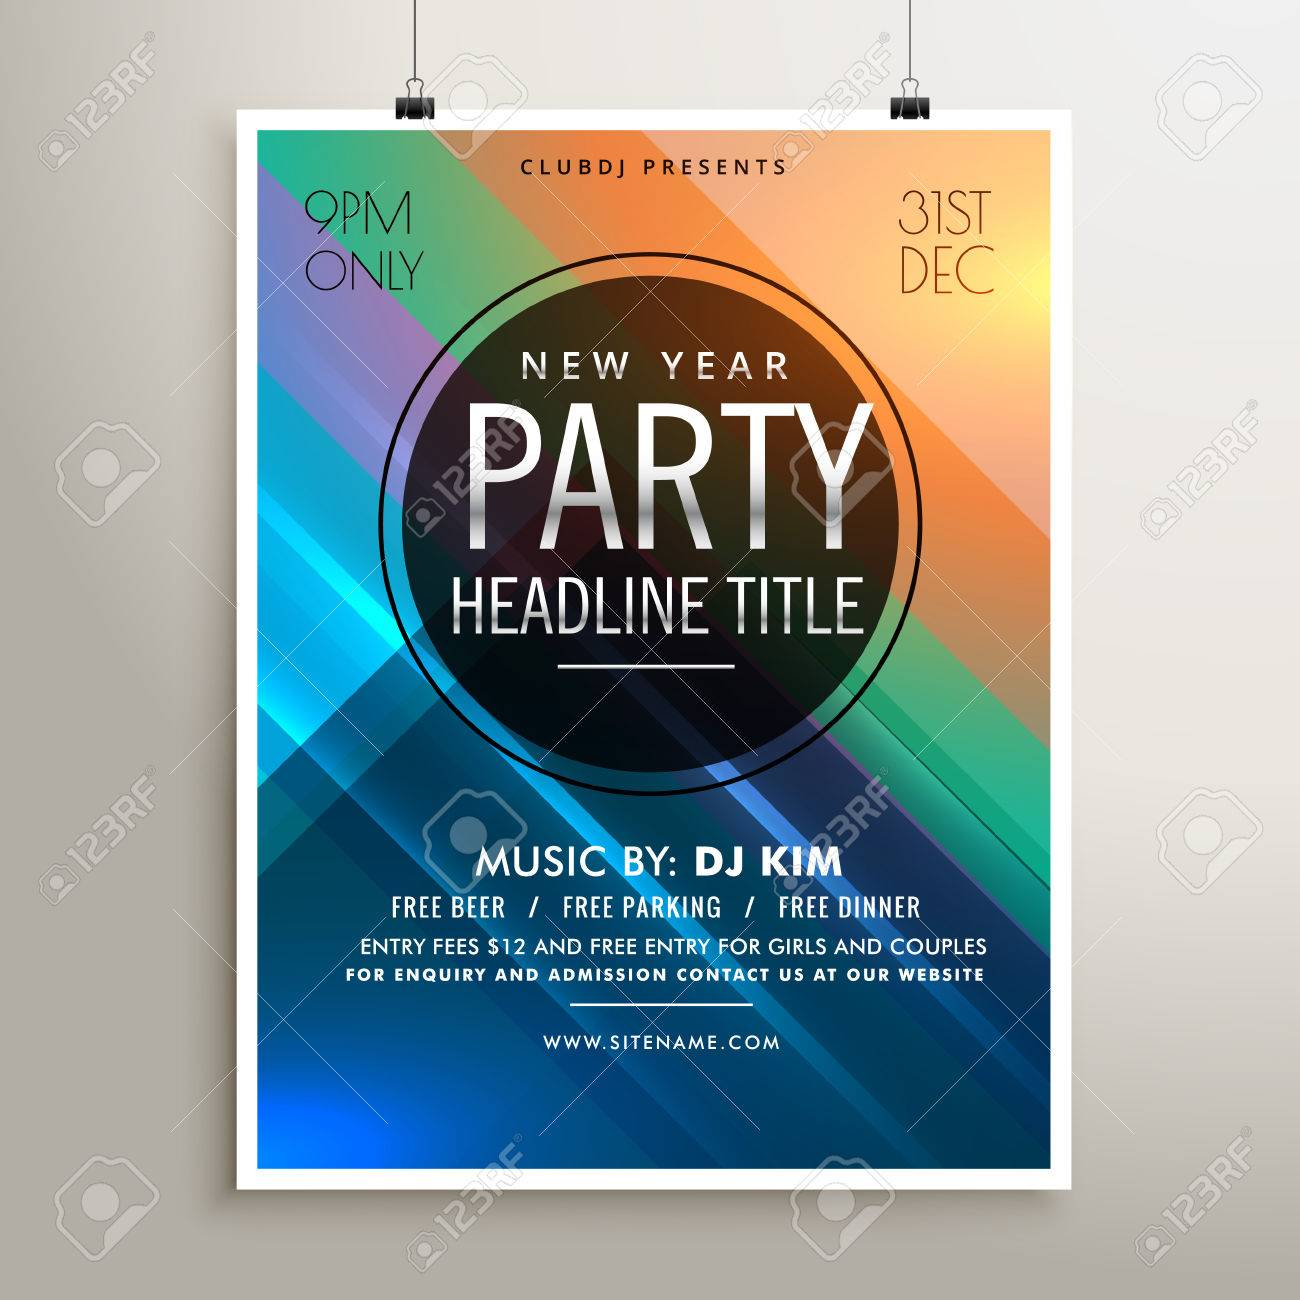 Party Event Flyer Template With Colorful Stripes Royalty Free Cliparts Vectors And Stock Illustration Image 65639648